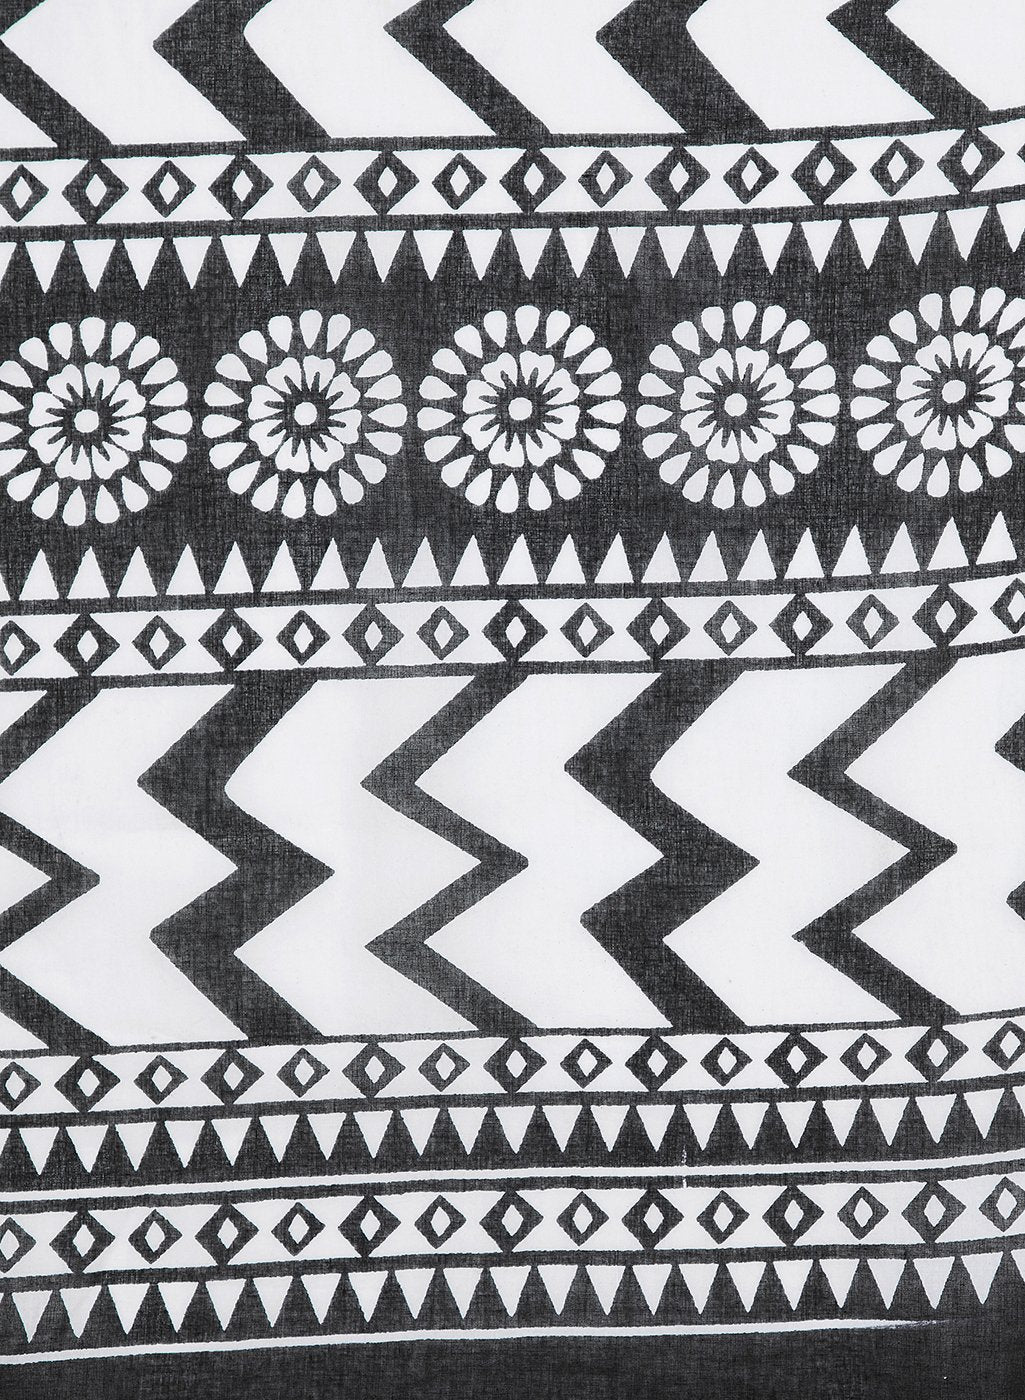 Black & White Screen Print Handcrafted Cotton Saree-Saree-Kalakari India-RDSNSA0142-Cotton, Geographical Indication, Hand Blocks, Hand Crafted, Heritage Prints, Sarees, Sustainable Fabrics-[Linen,Ethnic,wear,Fashionista,Handloom,Handicraft,Indigo,blockprint,block,print,Cotton,Chanderi,Blue, latest,classy,party,bollywood,trendy,summer,style,traditional,formal,elegant,unique,style,hand,block,print, dabu,booti,gift,present,glamorous,affordable,collectible,Sari,Saree,printed, holi, Diwali, birthday,